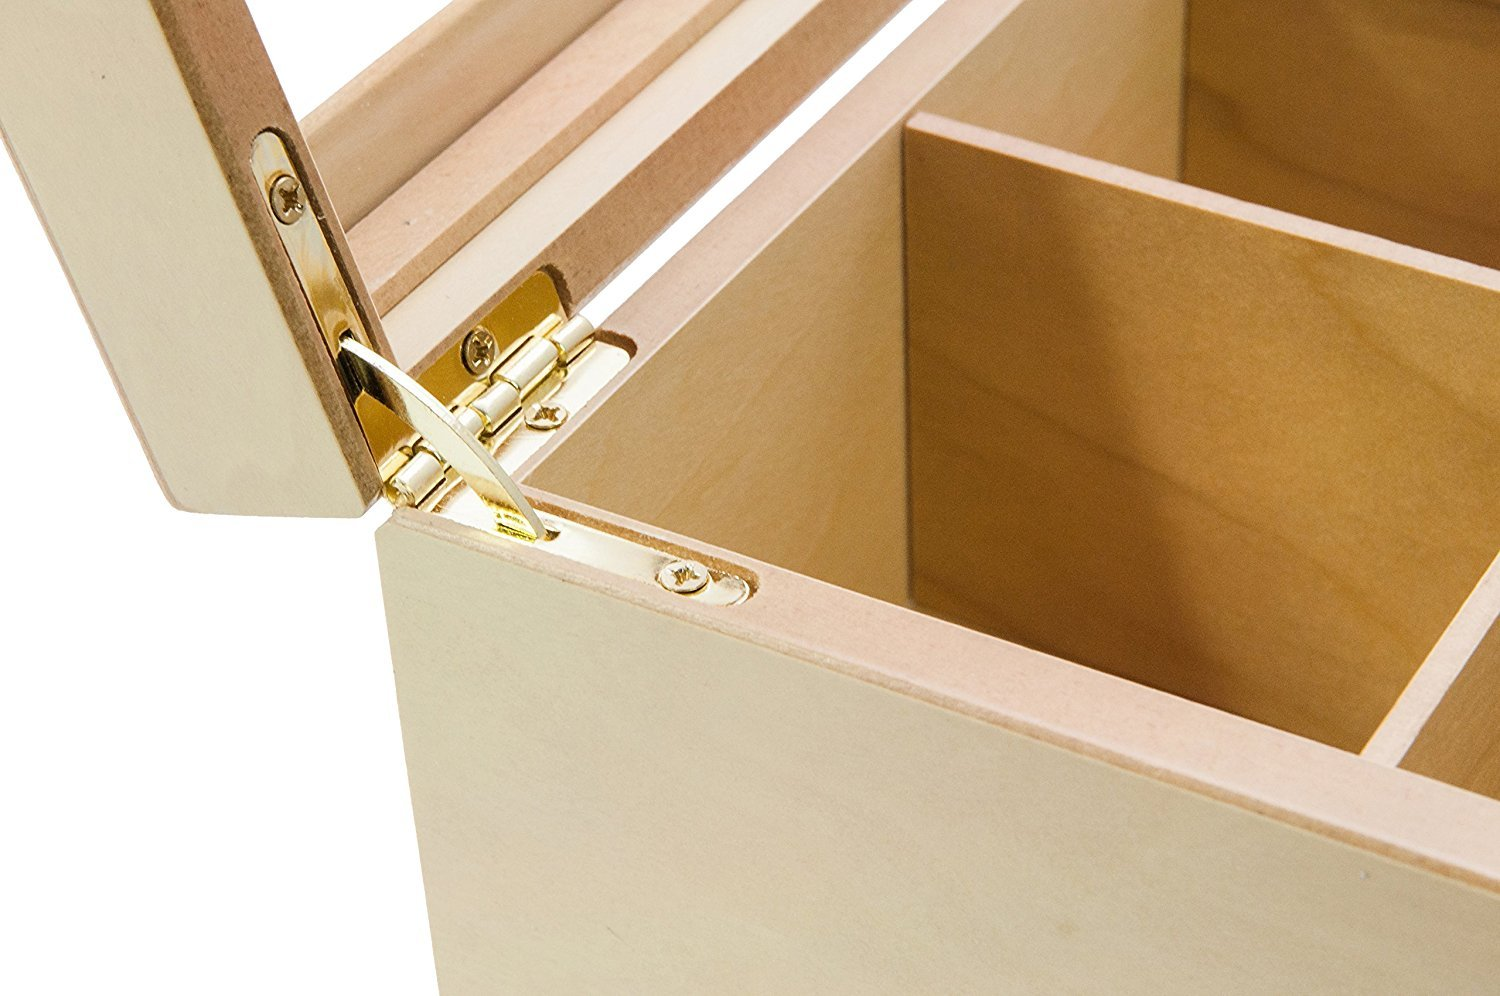 The Bamboo Leaf Luxury Wooden Tea BoxStorage Chest, 8 Compartments w/Glass Window (Natural) by The Bamboo Leaf (Image #4)